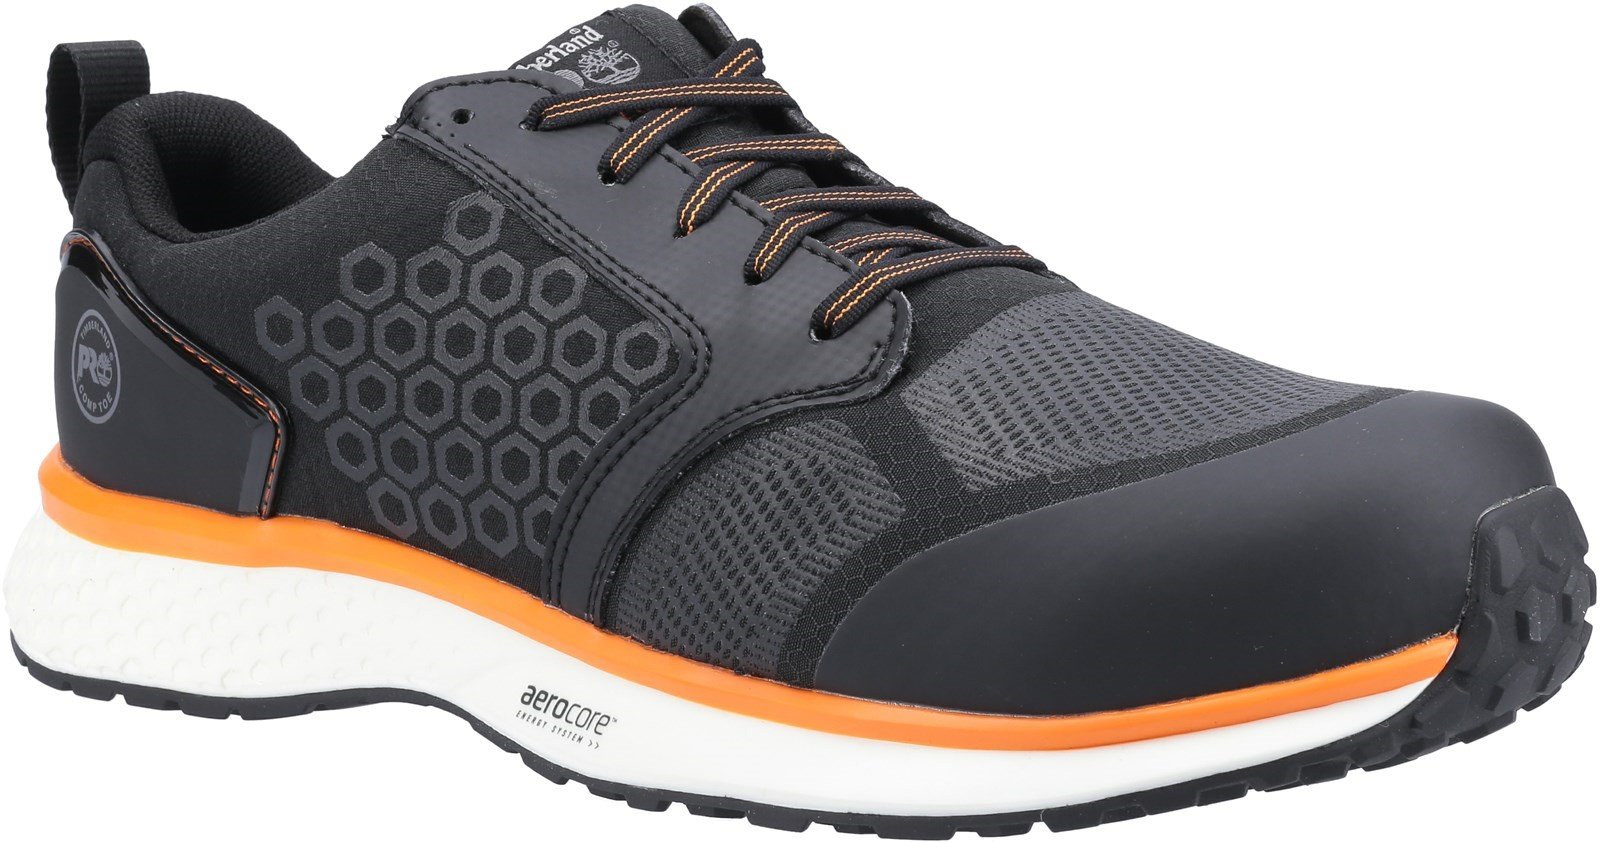 Timberland Pro Men's Reaxion Composite Safety Trainer Various Colours - Black/Orange 6